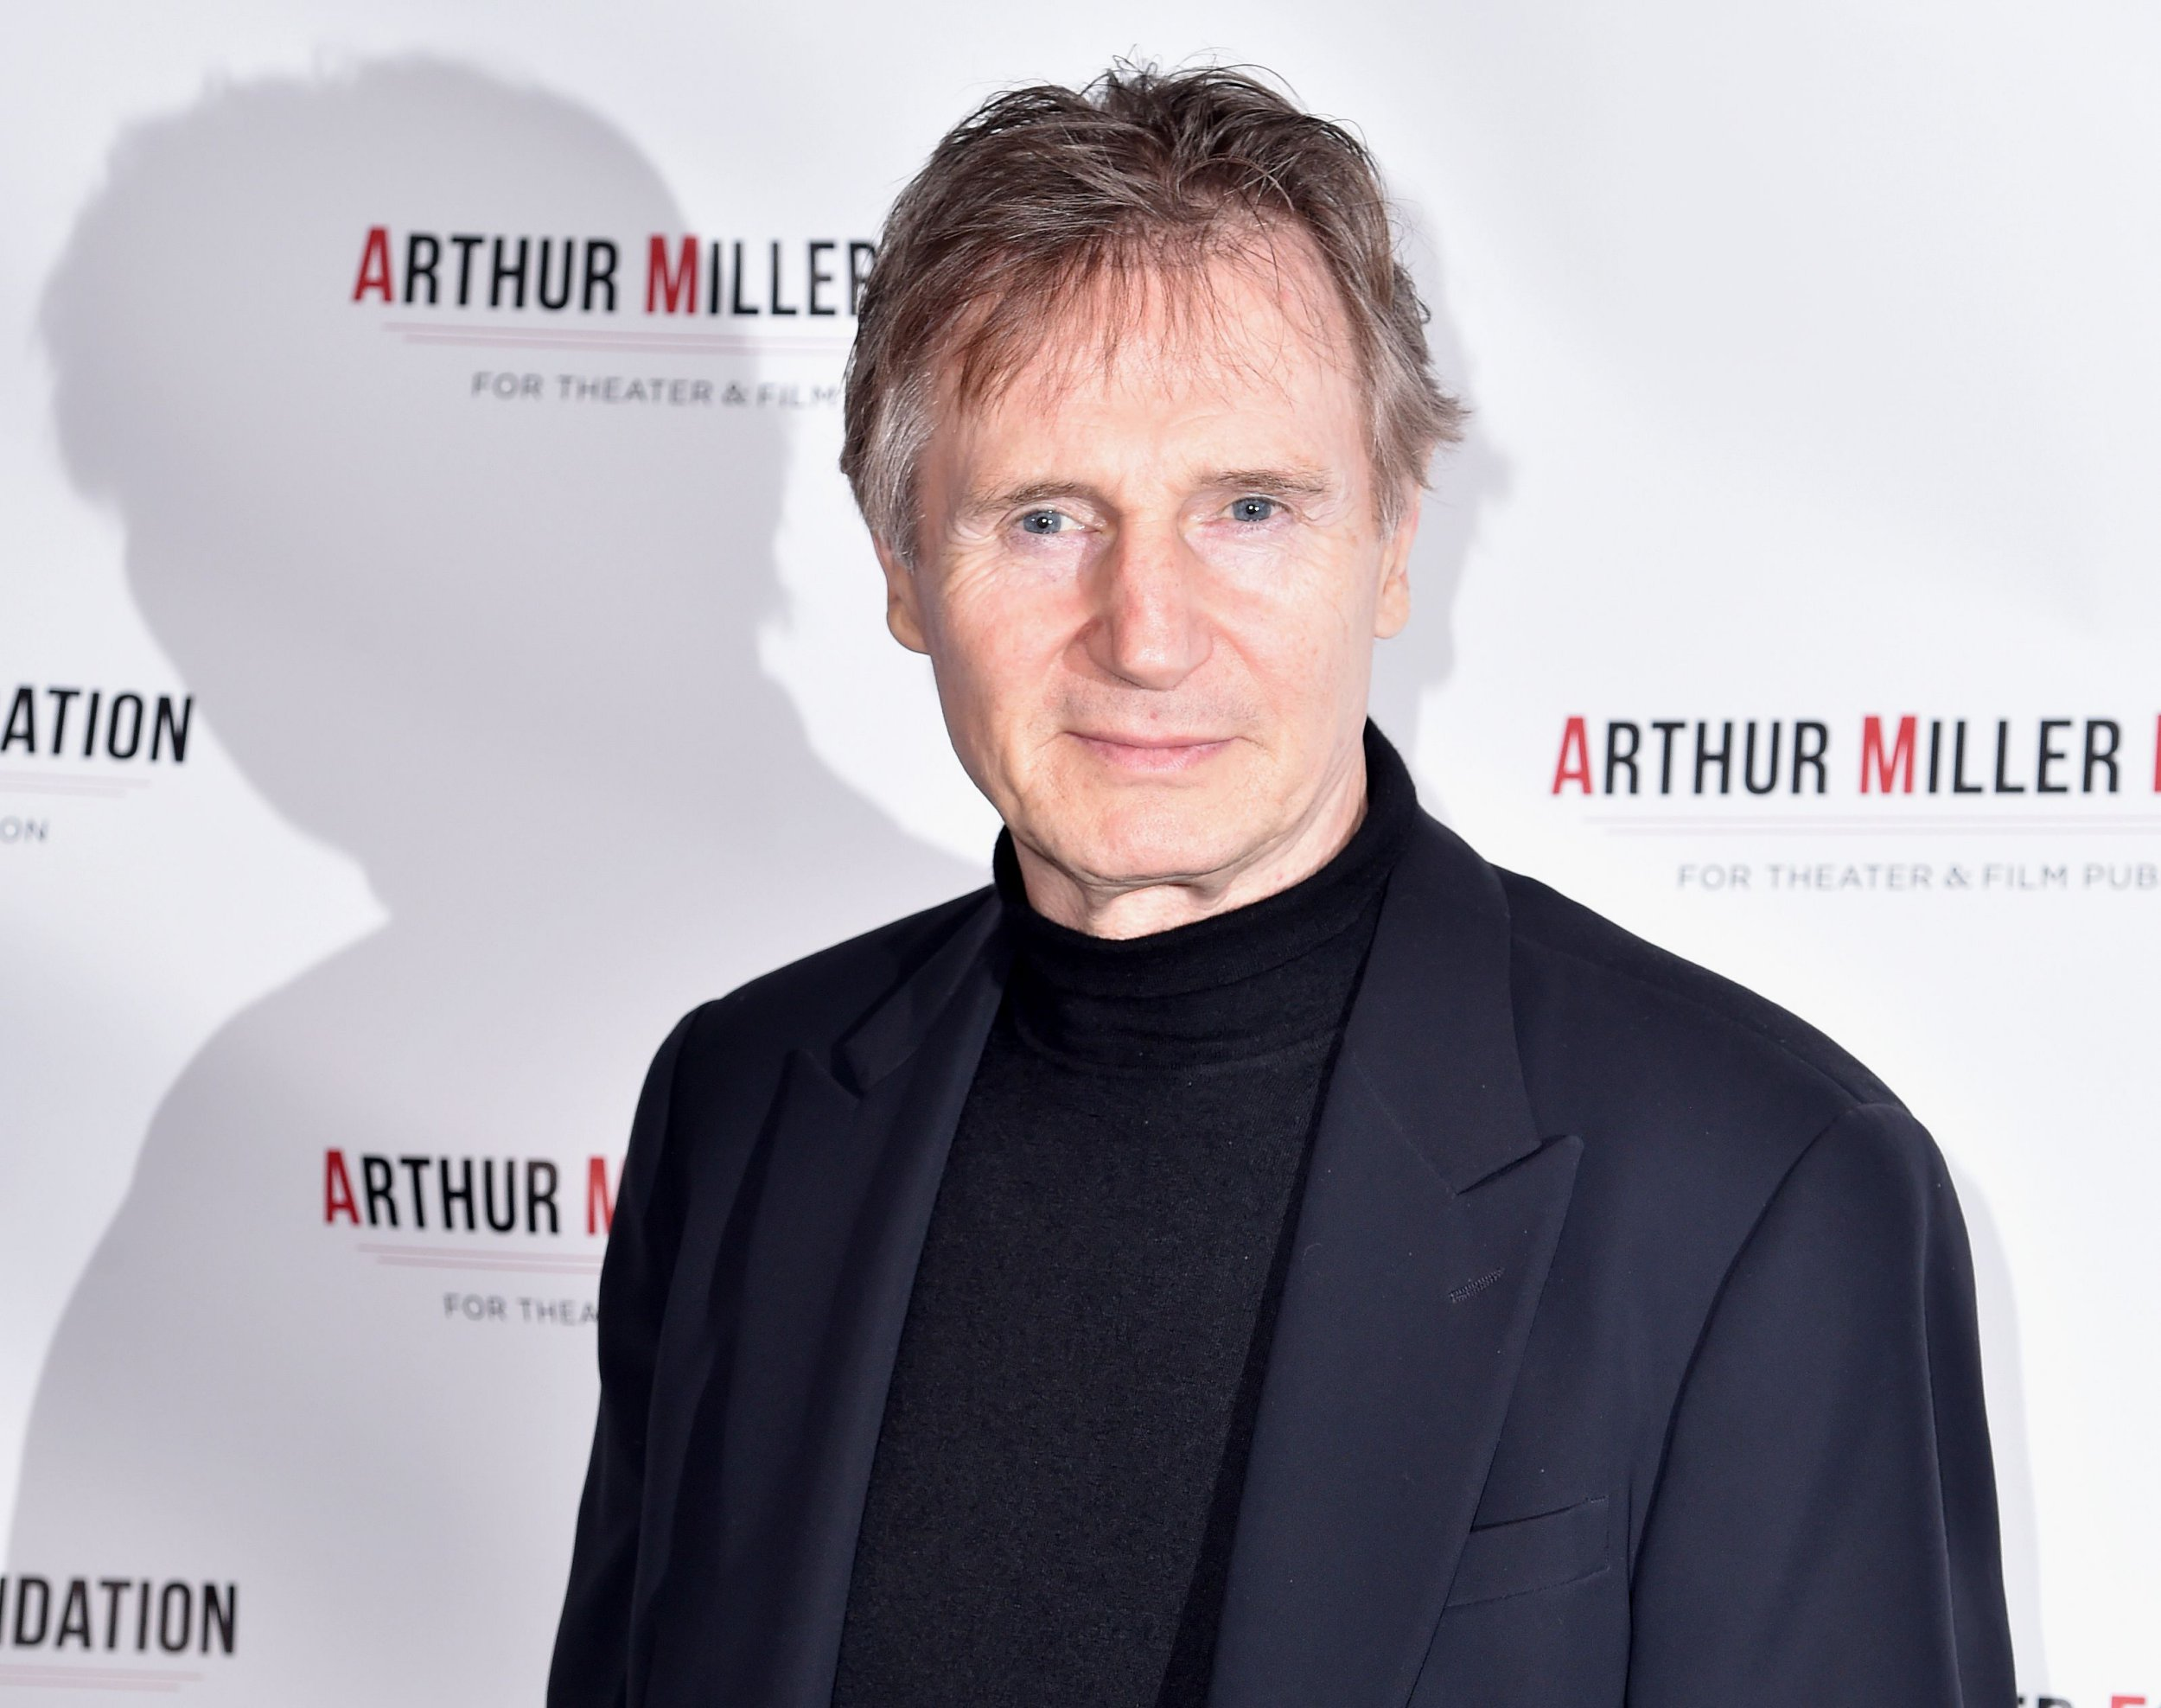 Liam Neeson 'cancels second public appearance' as he lays low amid Hollywood backlash